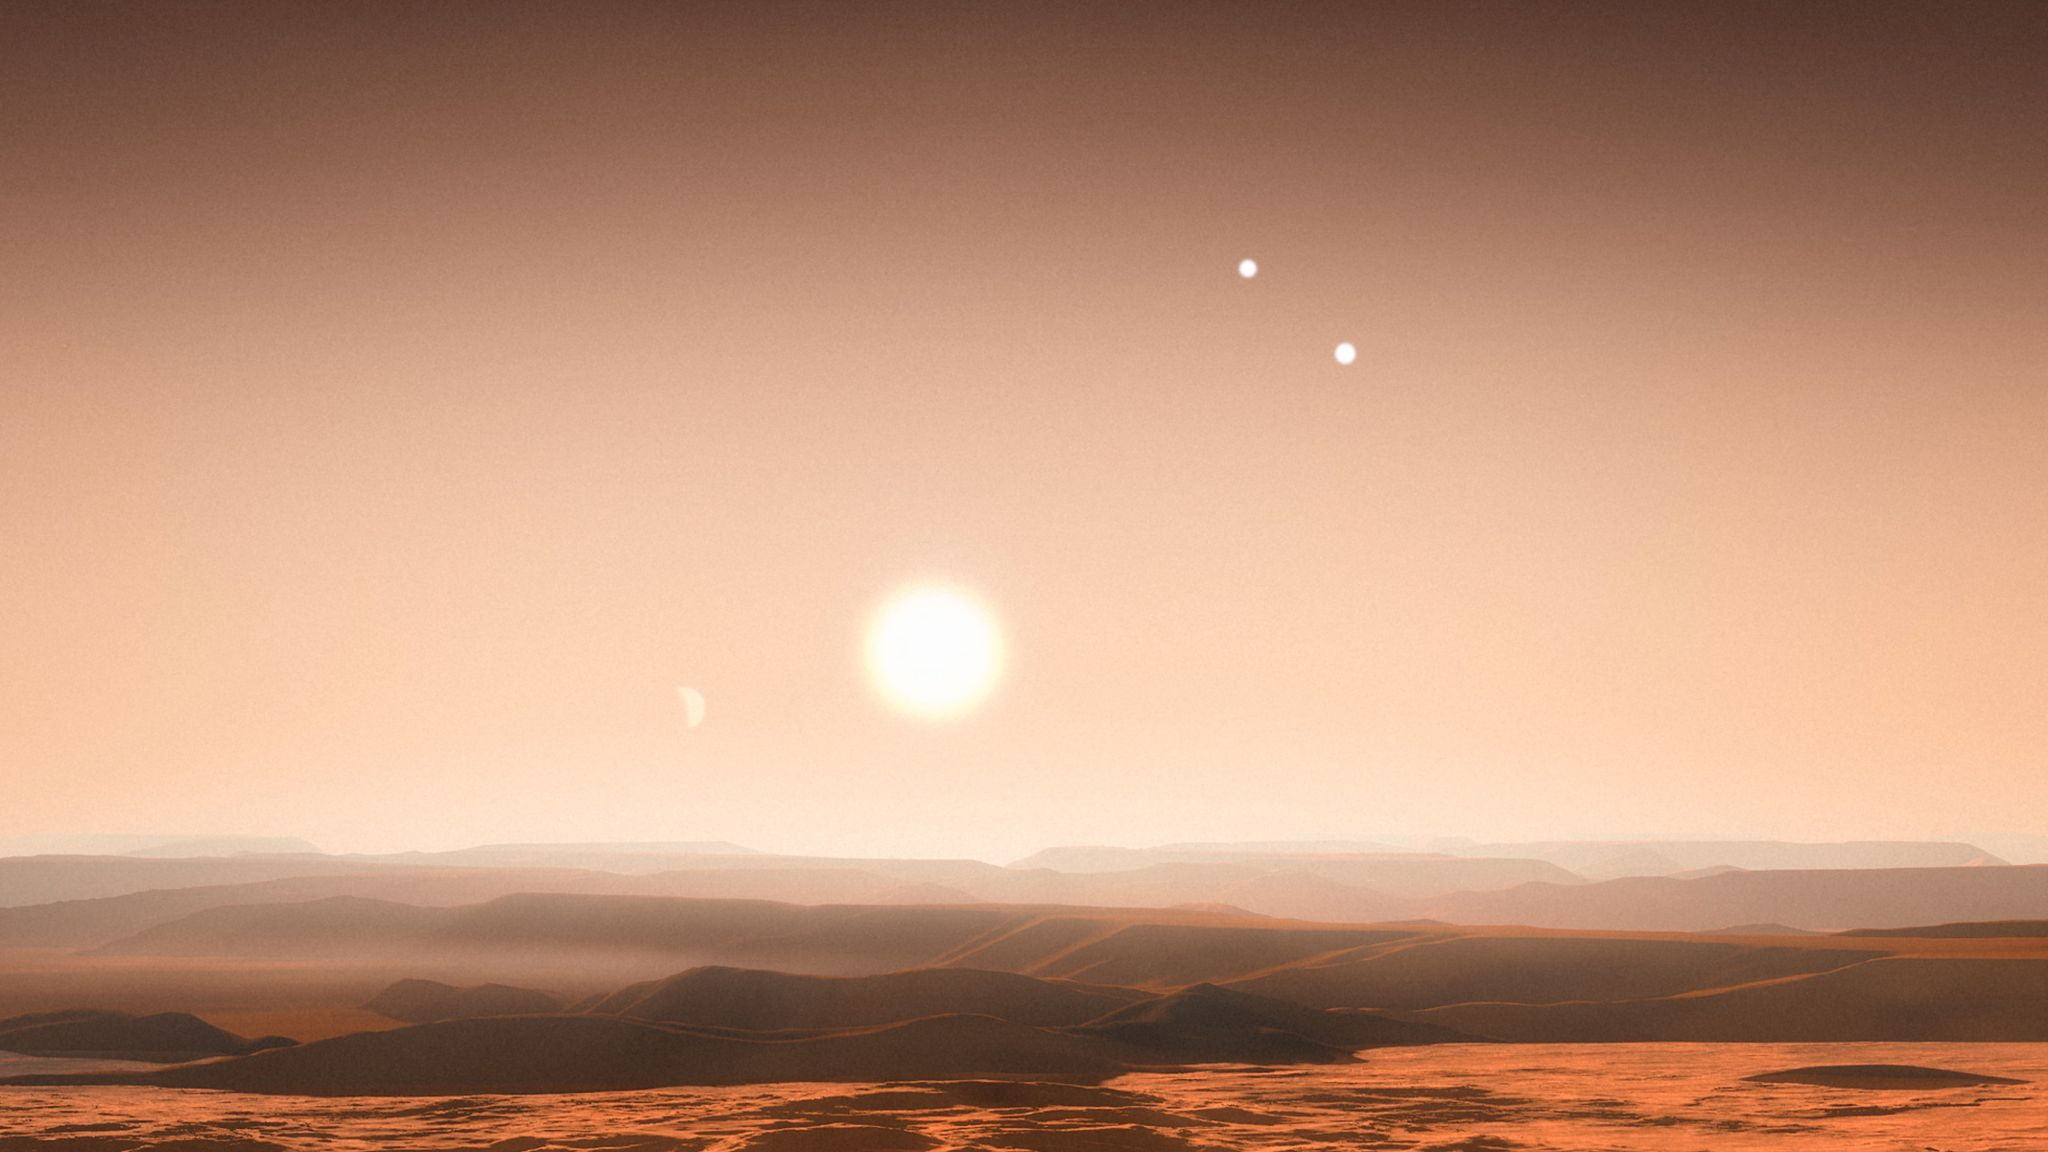 'Impossible' Triple Star System Is a Mystery Astronomers Can't Explain